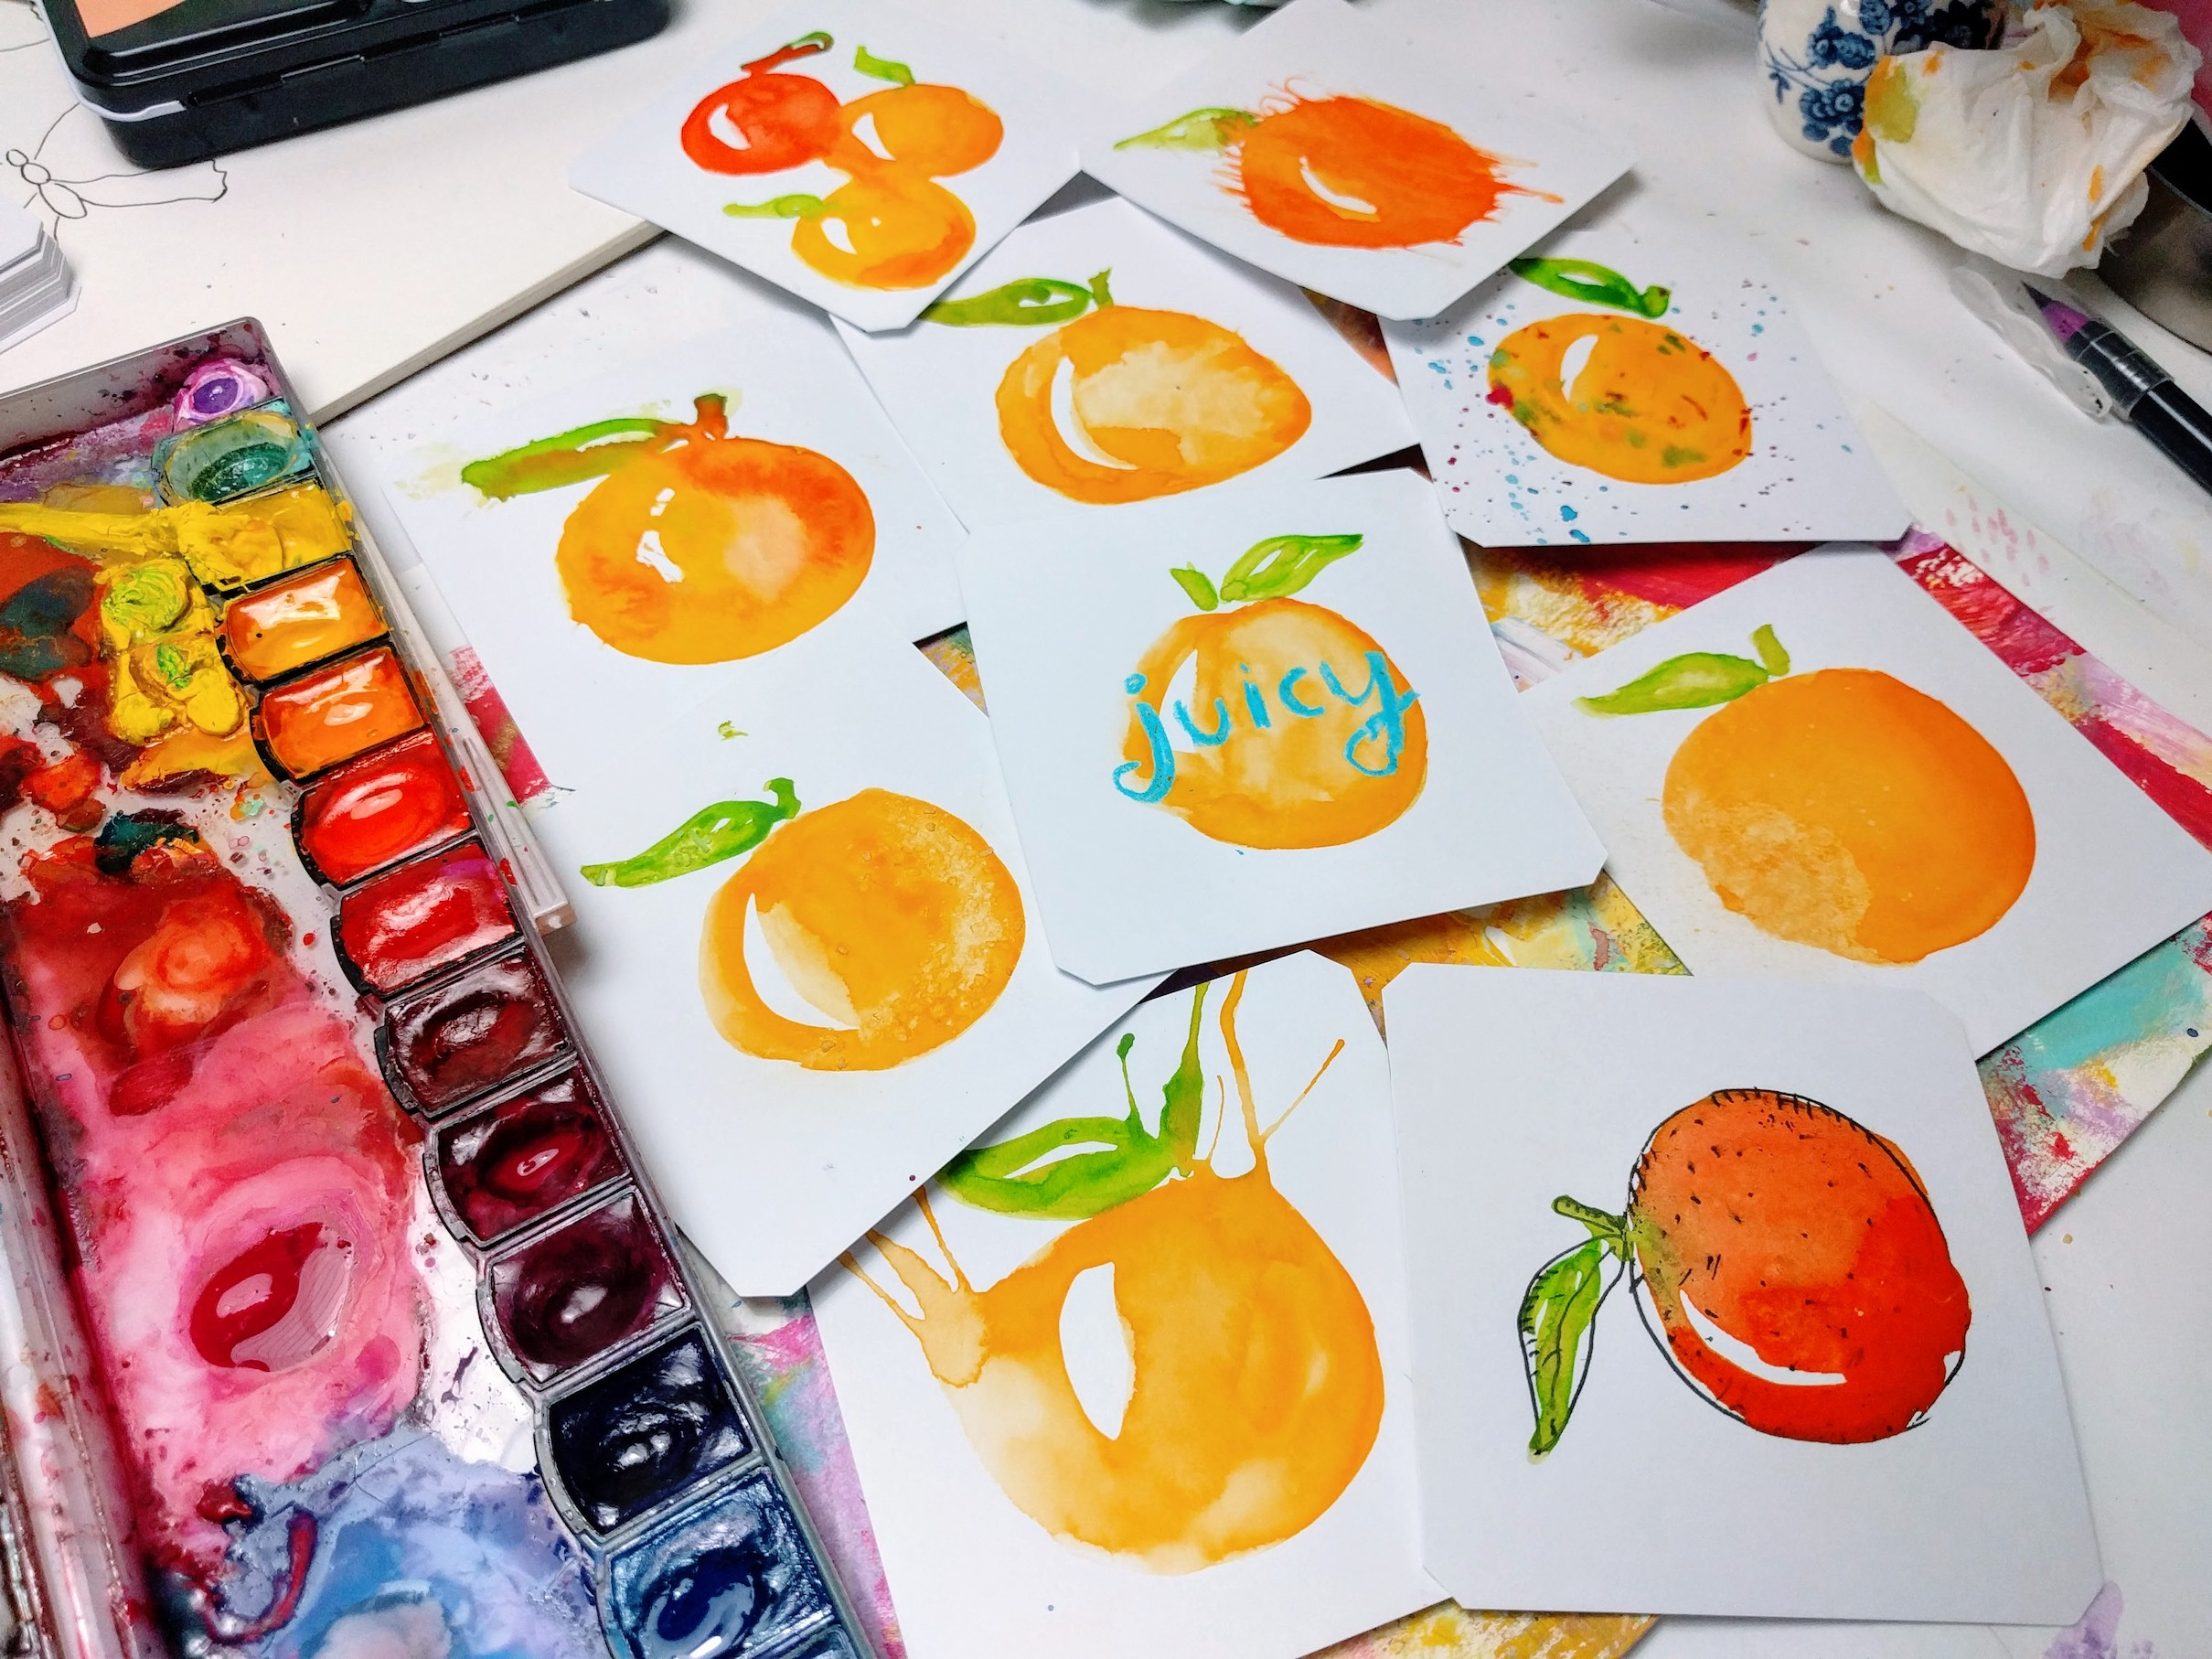 Watercolor Techniques For Beginners: 9 Ways to Paint an Orange ...